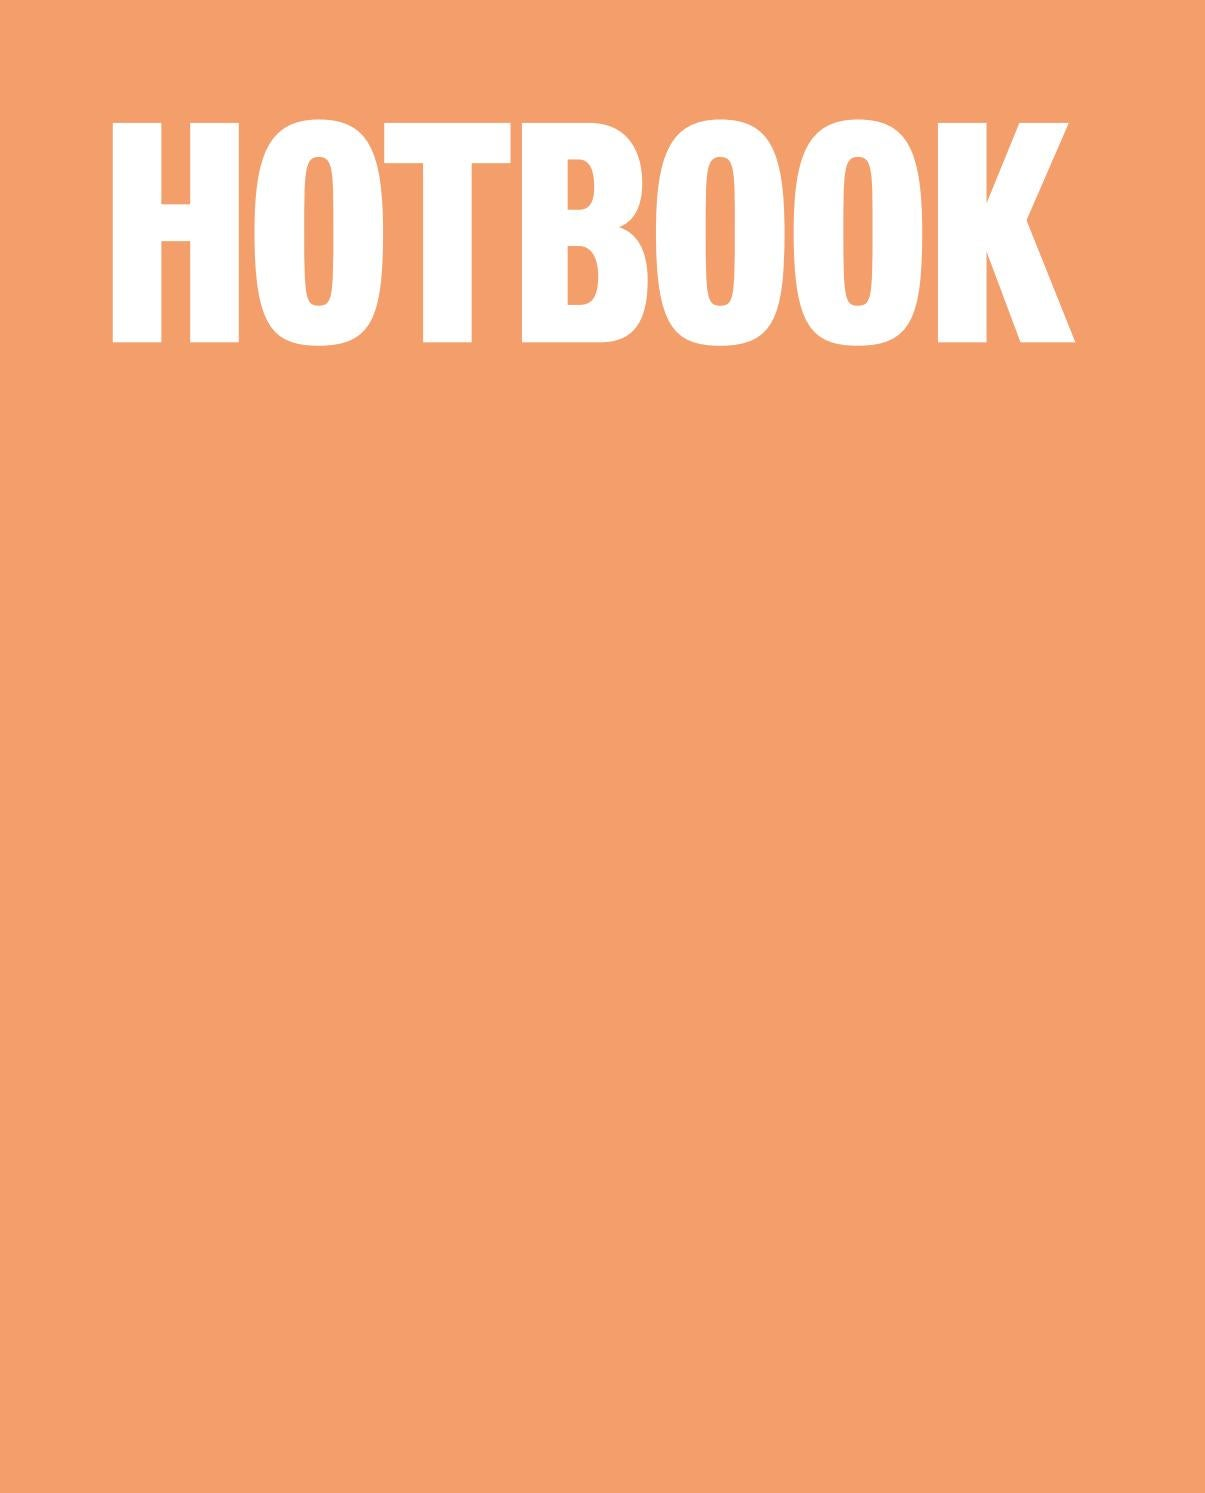 new concept 521af b9b88 HOTBOOK 030 by HOTBOOK - issuu